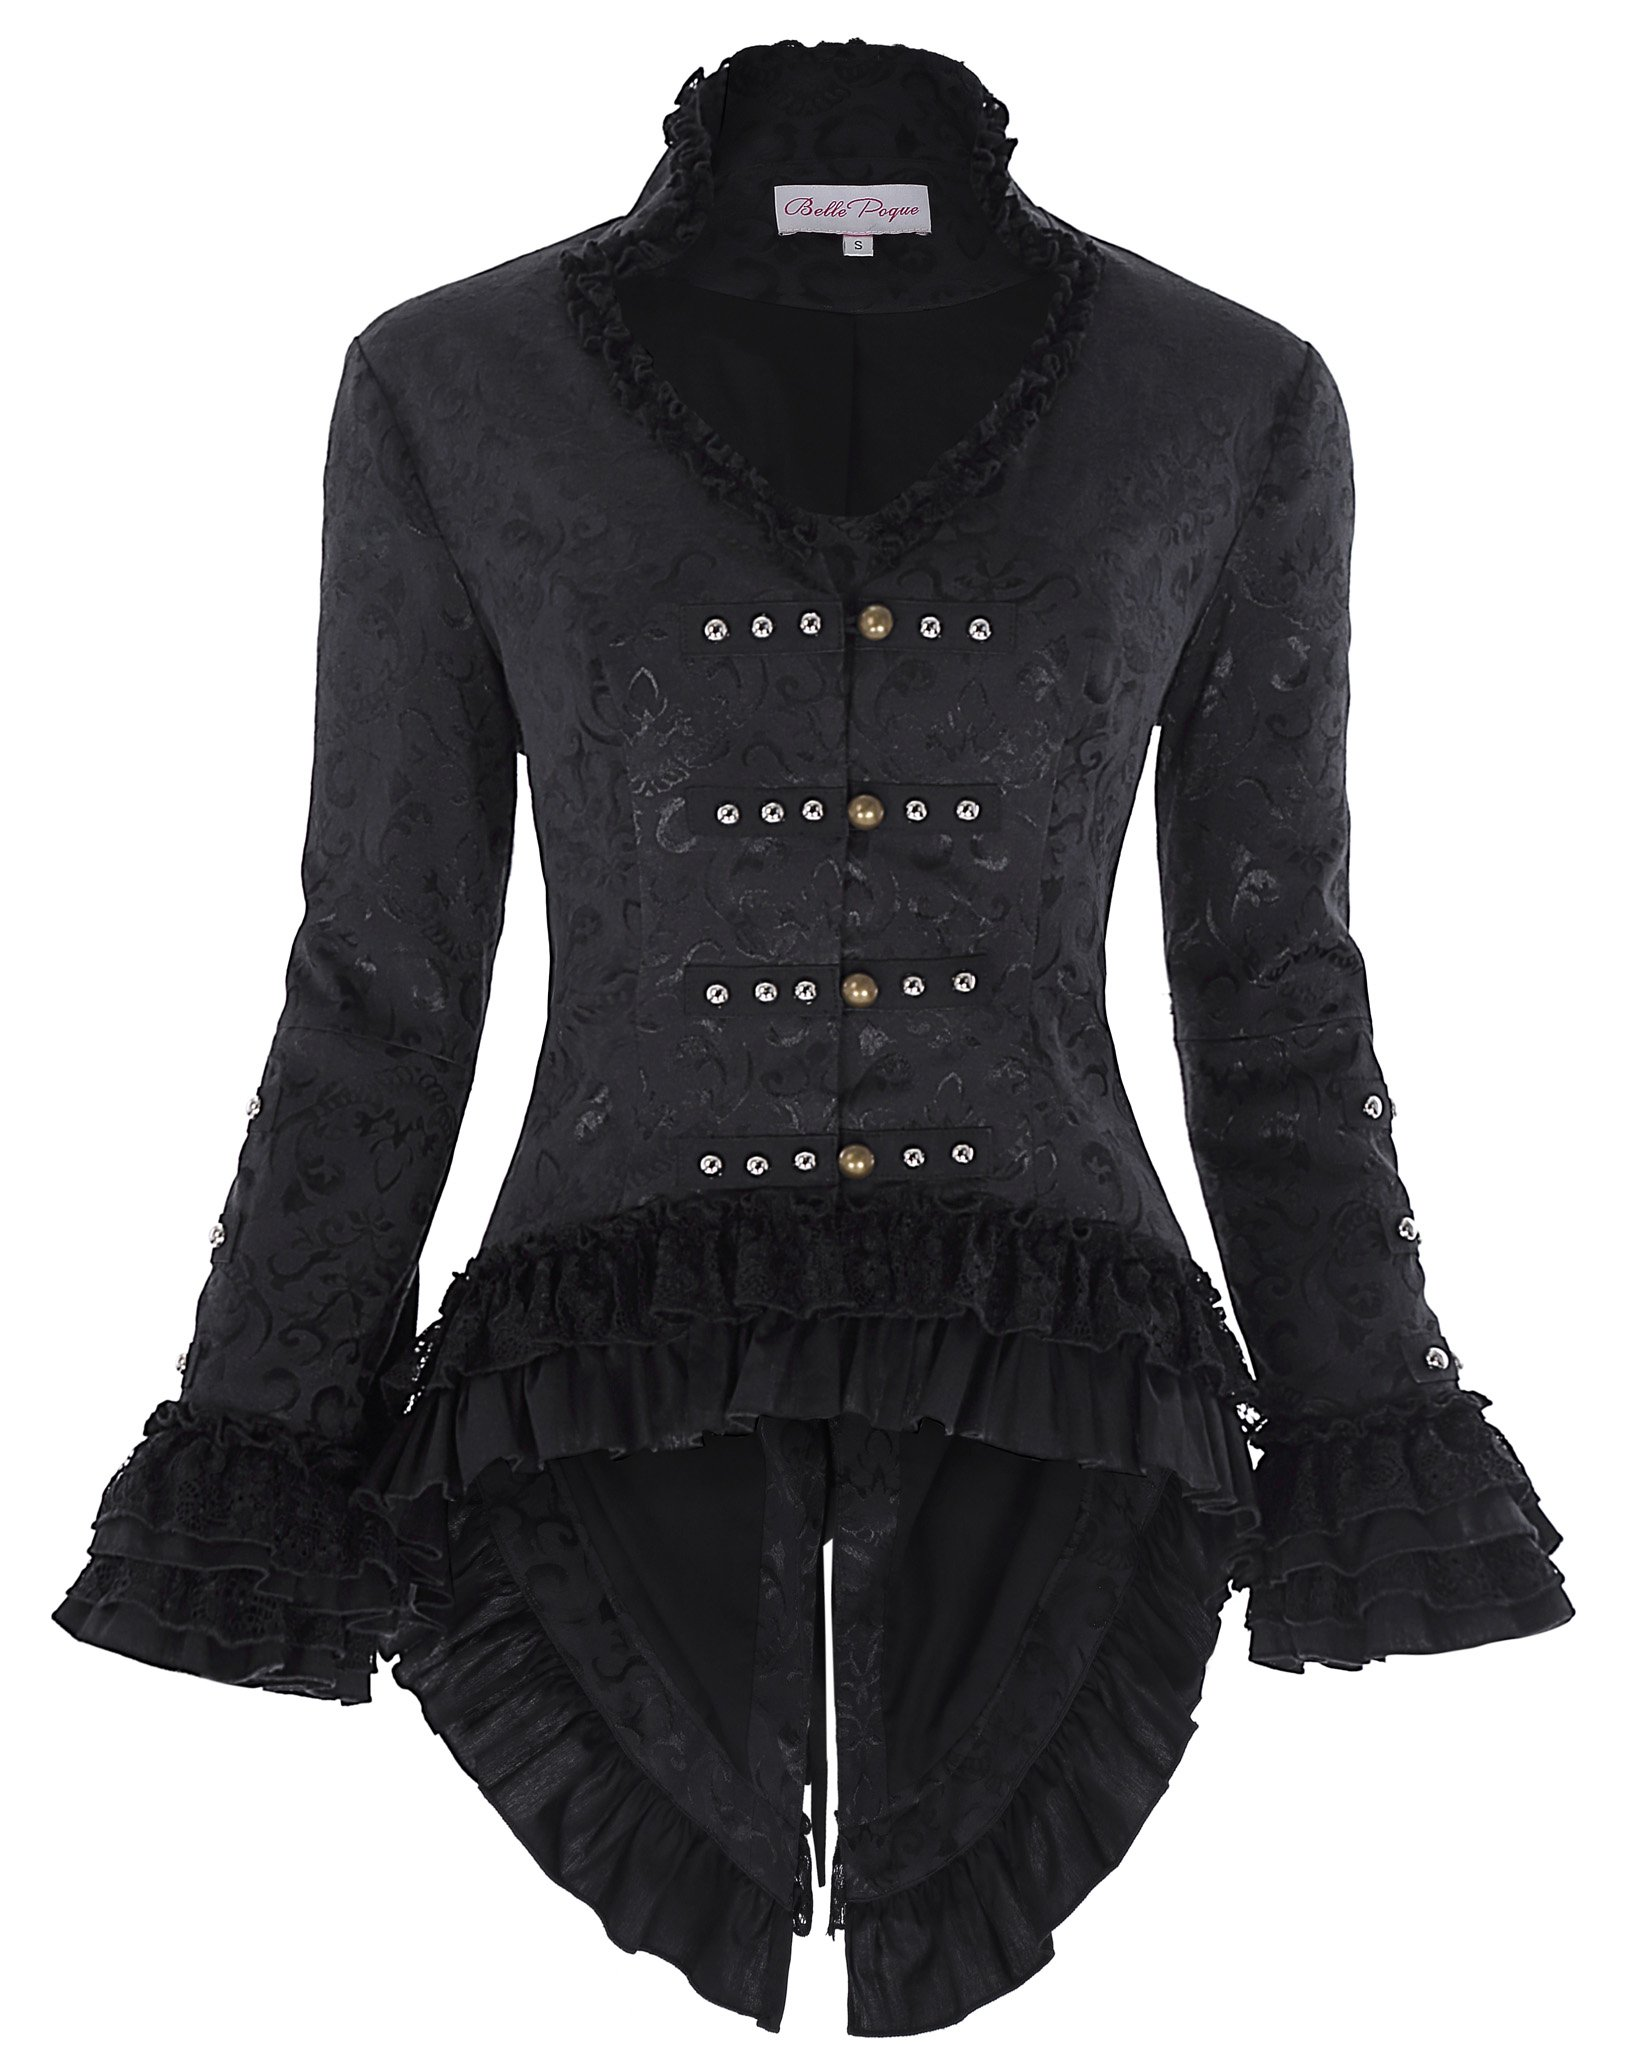 Womens Casual Victorian Steampunk Tail Jacket with Back Lacing BP223-1 Black Size XS